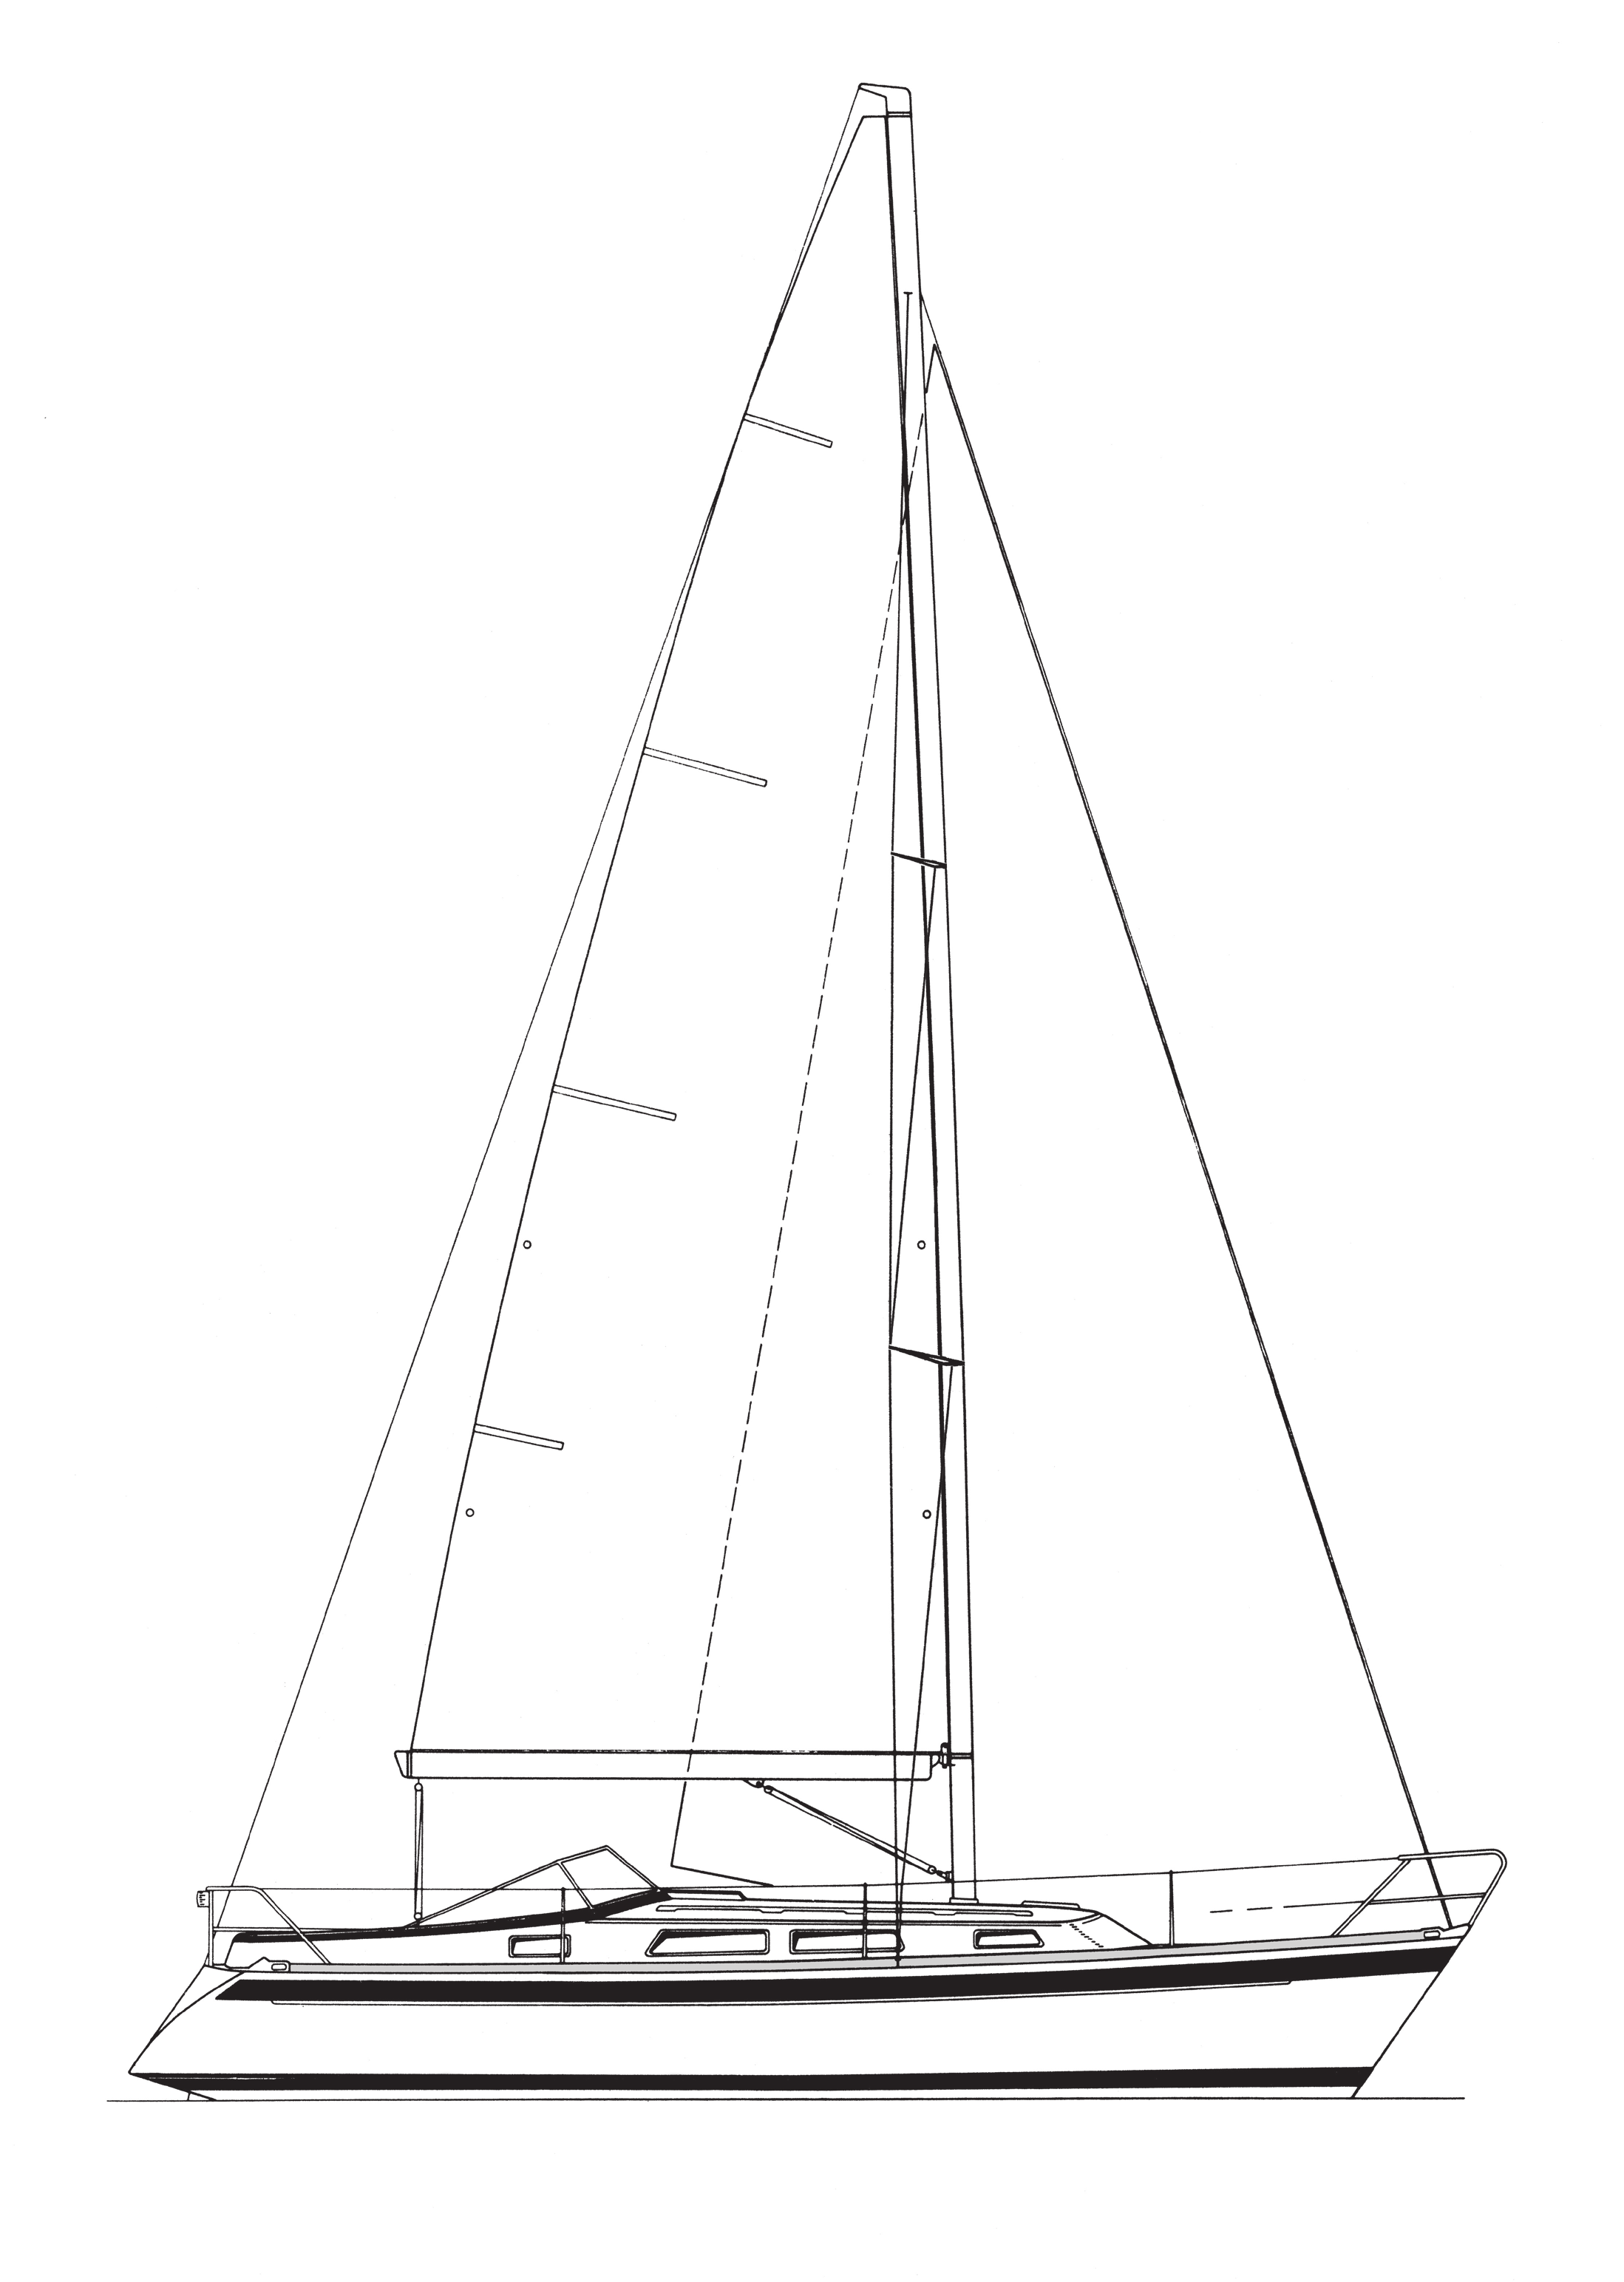 HR 31Mk II DESIGN: GERMÁN FRERS STANDARD SPECIFICATION TECHNISCHE STANDARDBESCHREIBUNG TEKNISK STANDARDBESKRIVNING Main datas: Designer: Germán Frers Hull length 9.62 m 31 7 Max sailing waterline 8.